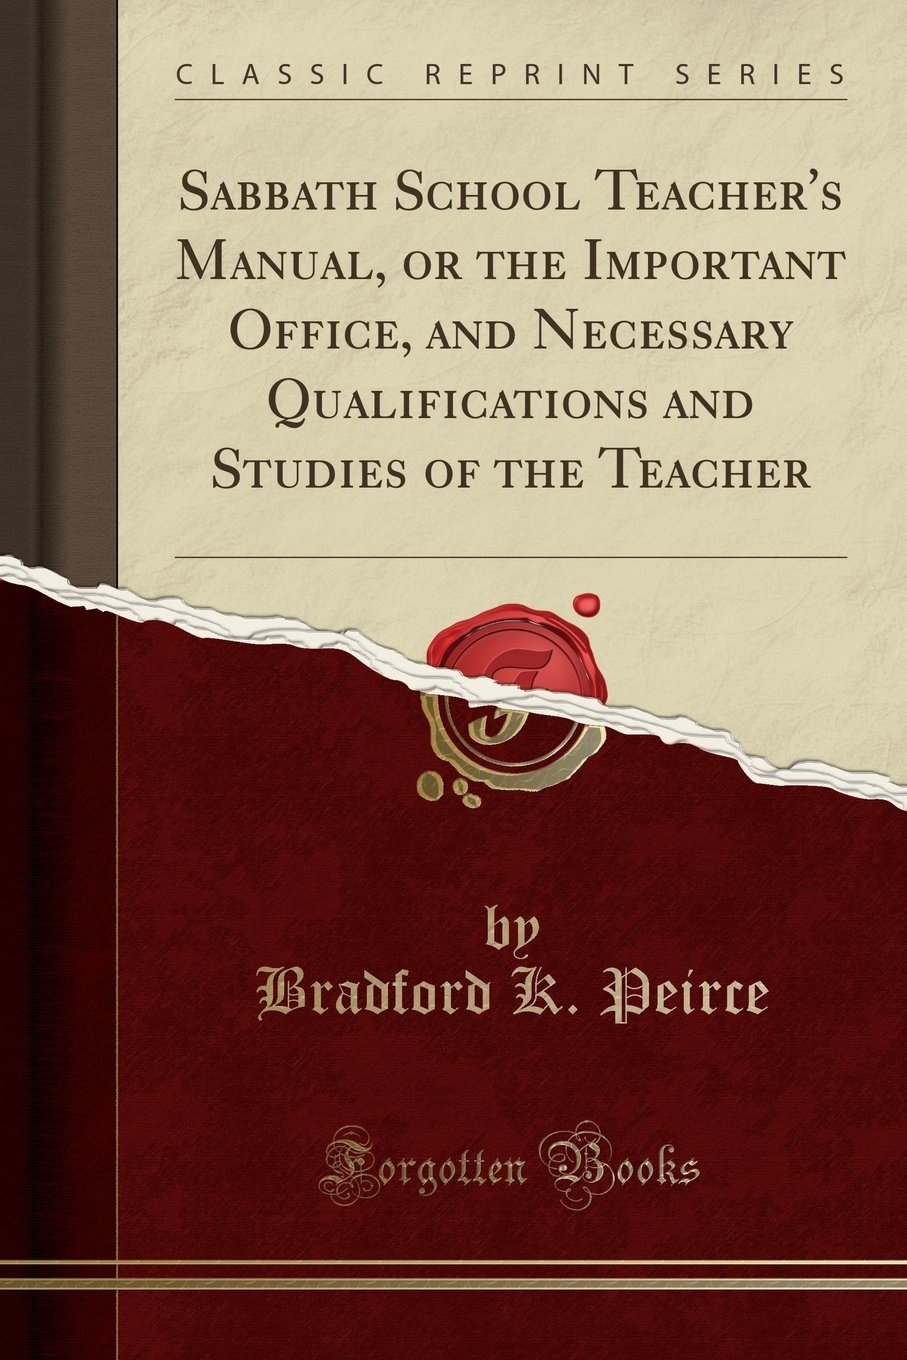 Sabbath School Teacher's Manual, or the Important Office, and Necessary  Qualifications and Studies of the Teacher (Classic Reprint): Bradford K.  Peirce: ...